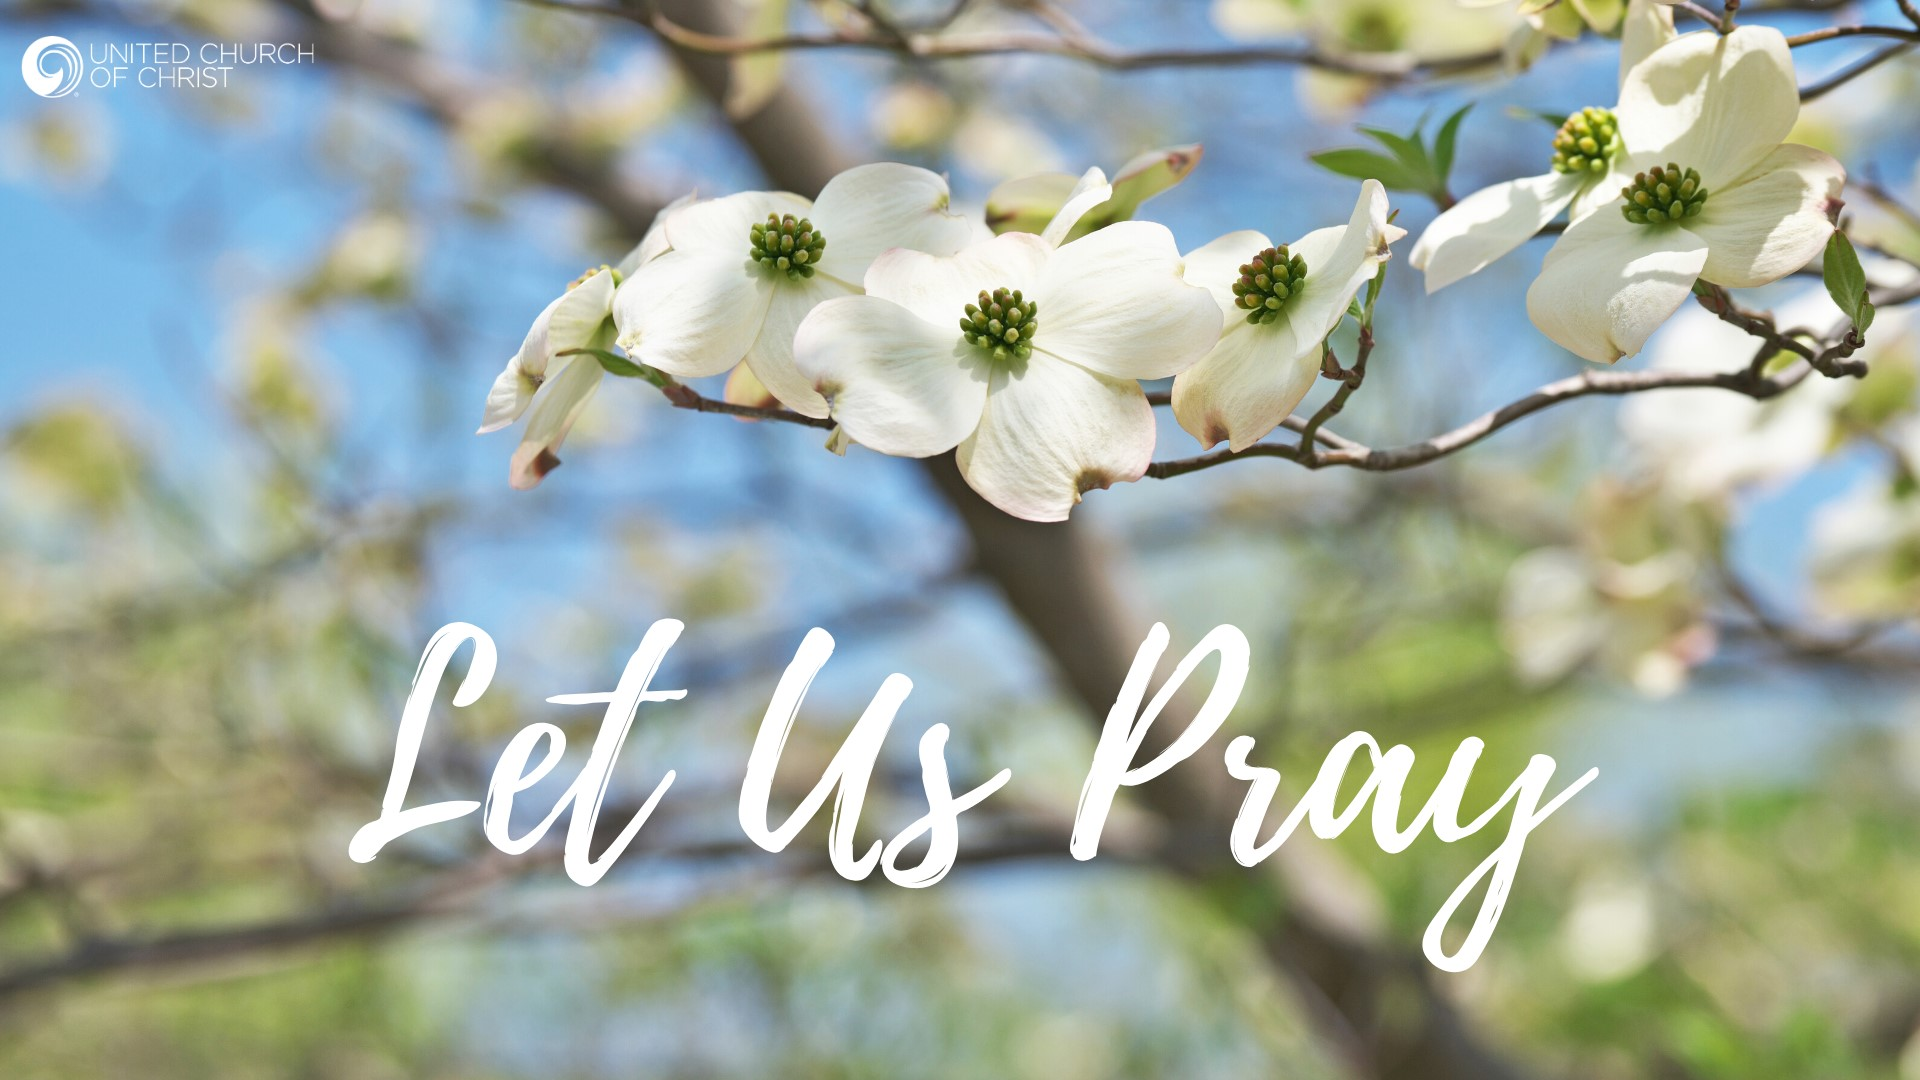 Call to Prayer image 4/5/20